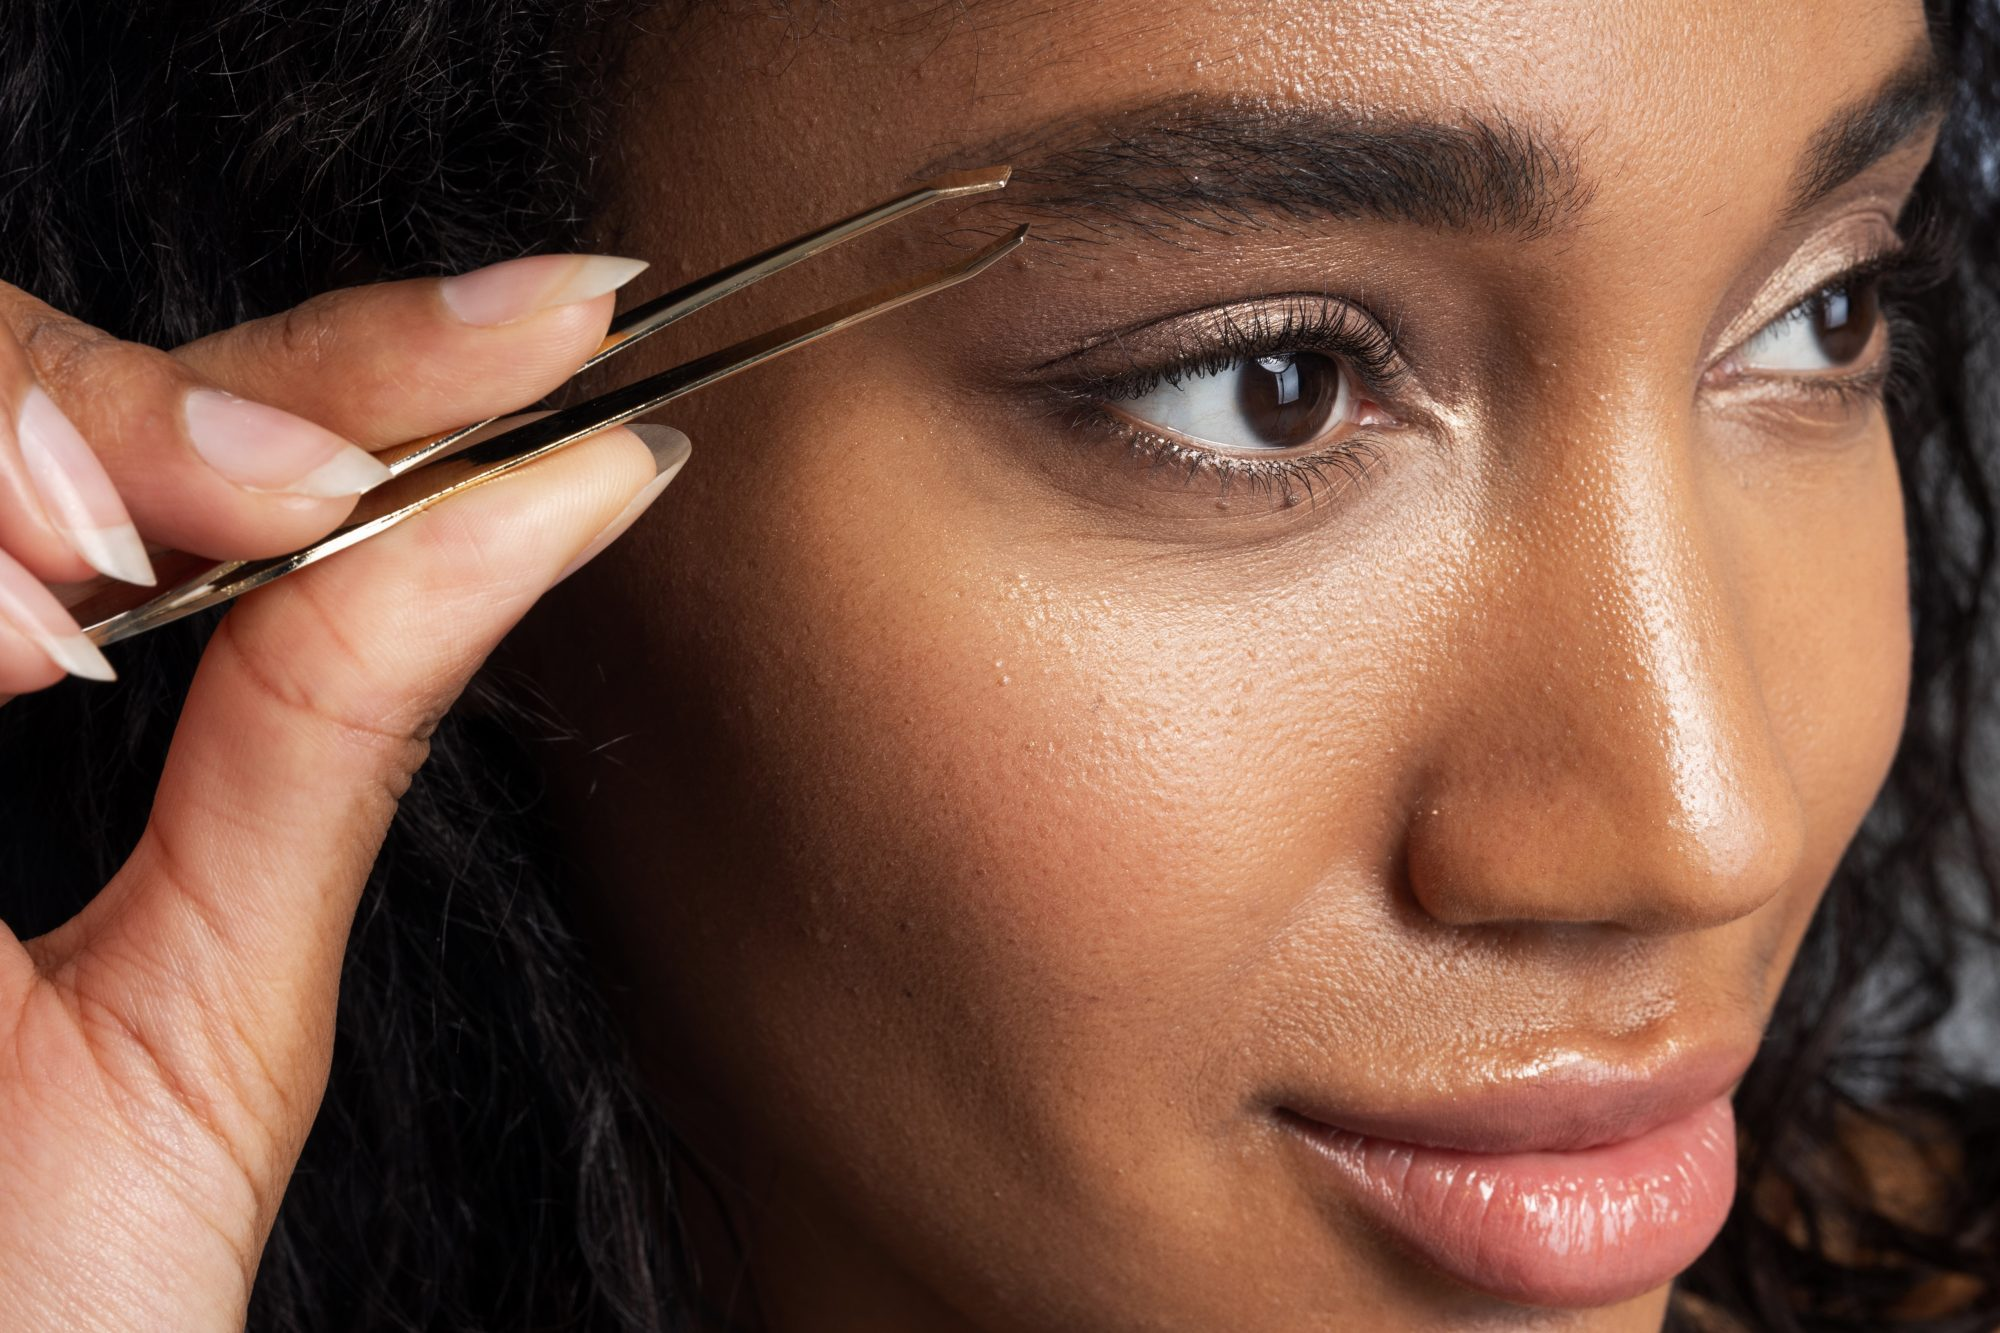 This Top-Selling Eyebrow Tweezer Is 20% off for Amazon Prime Day